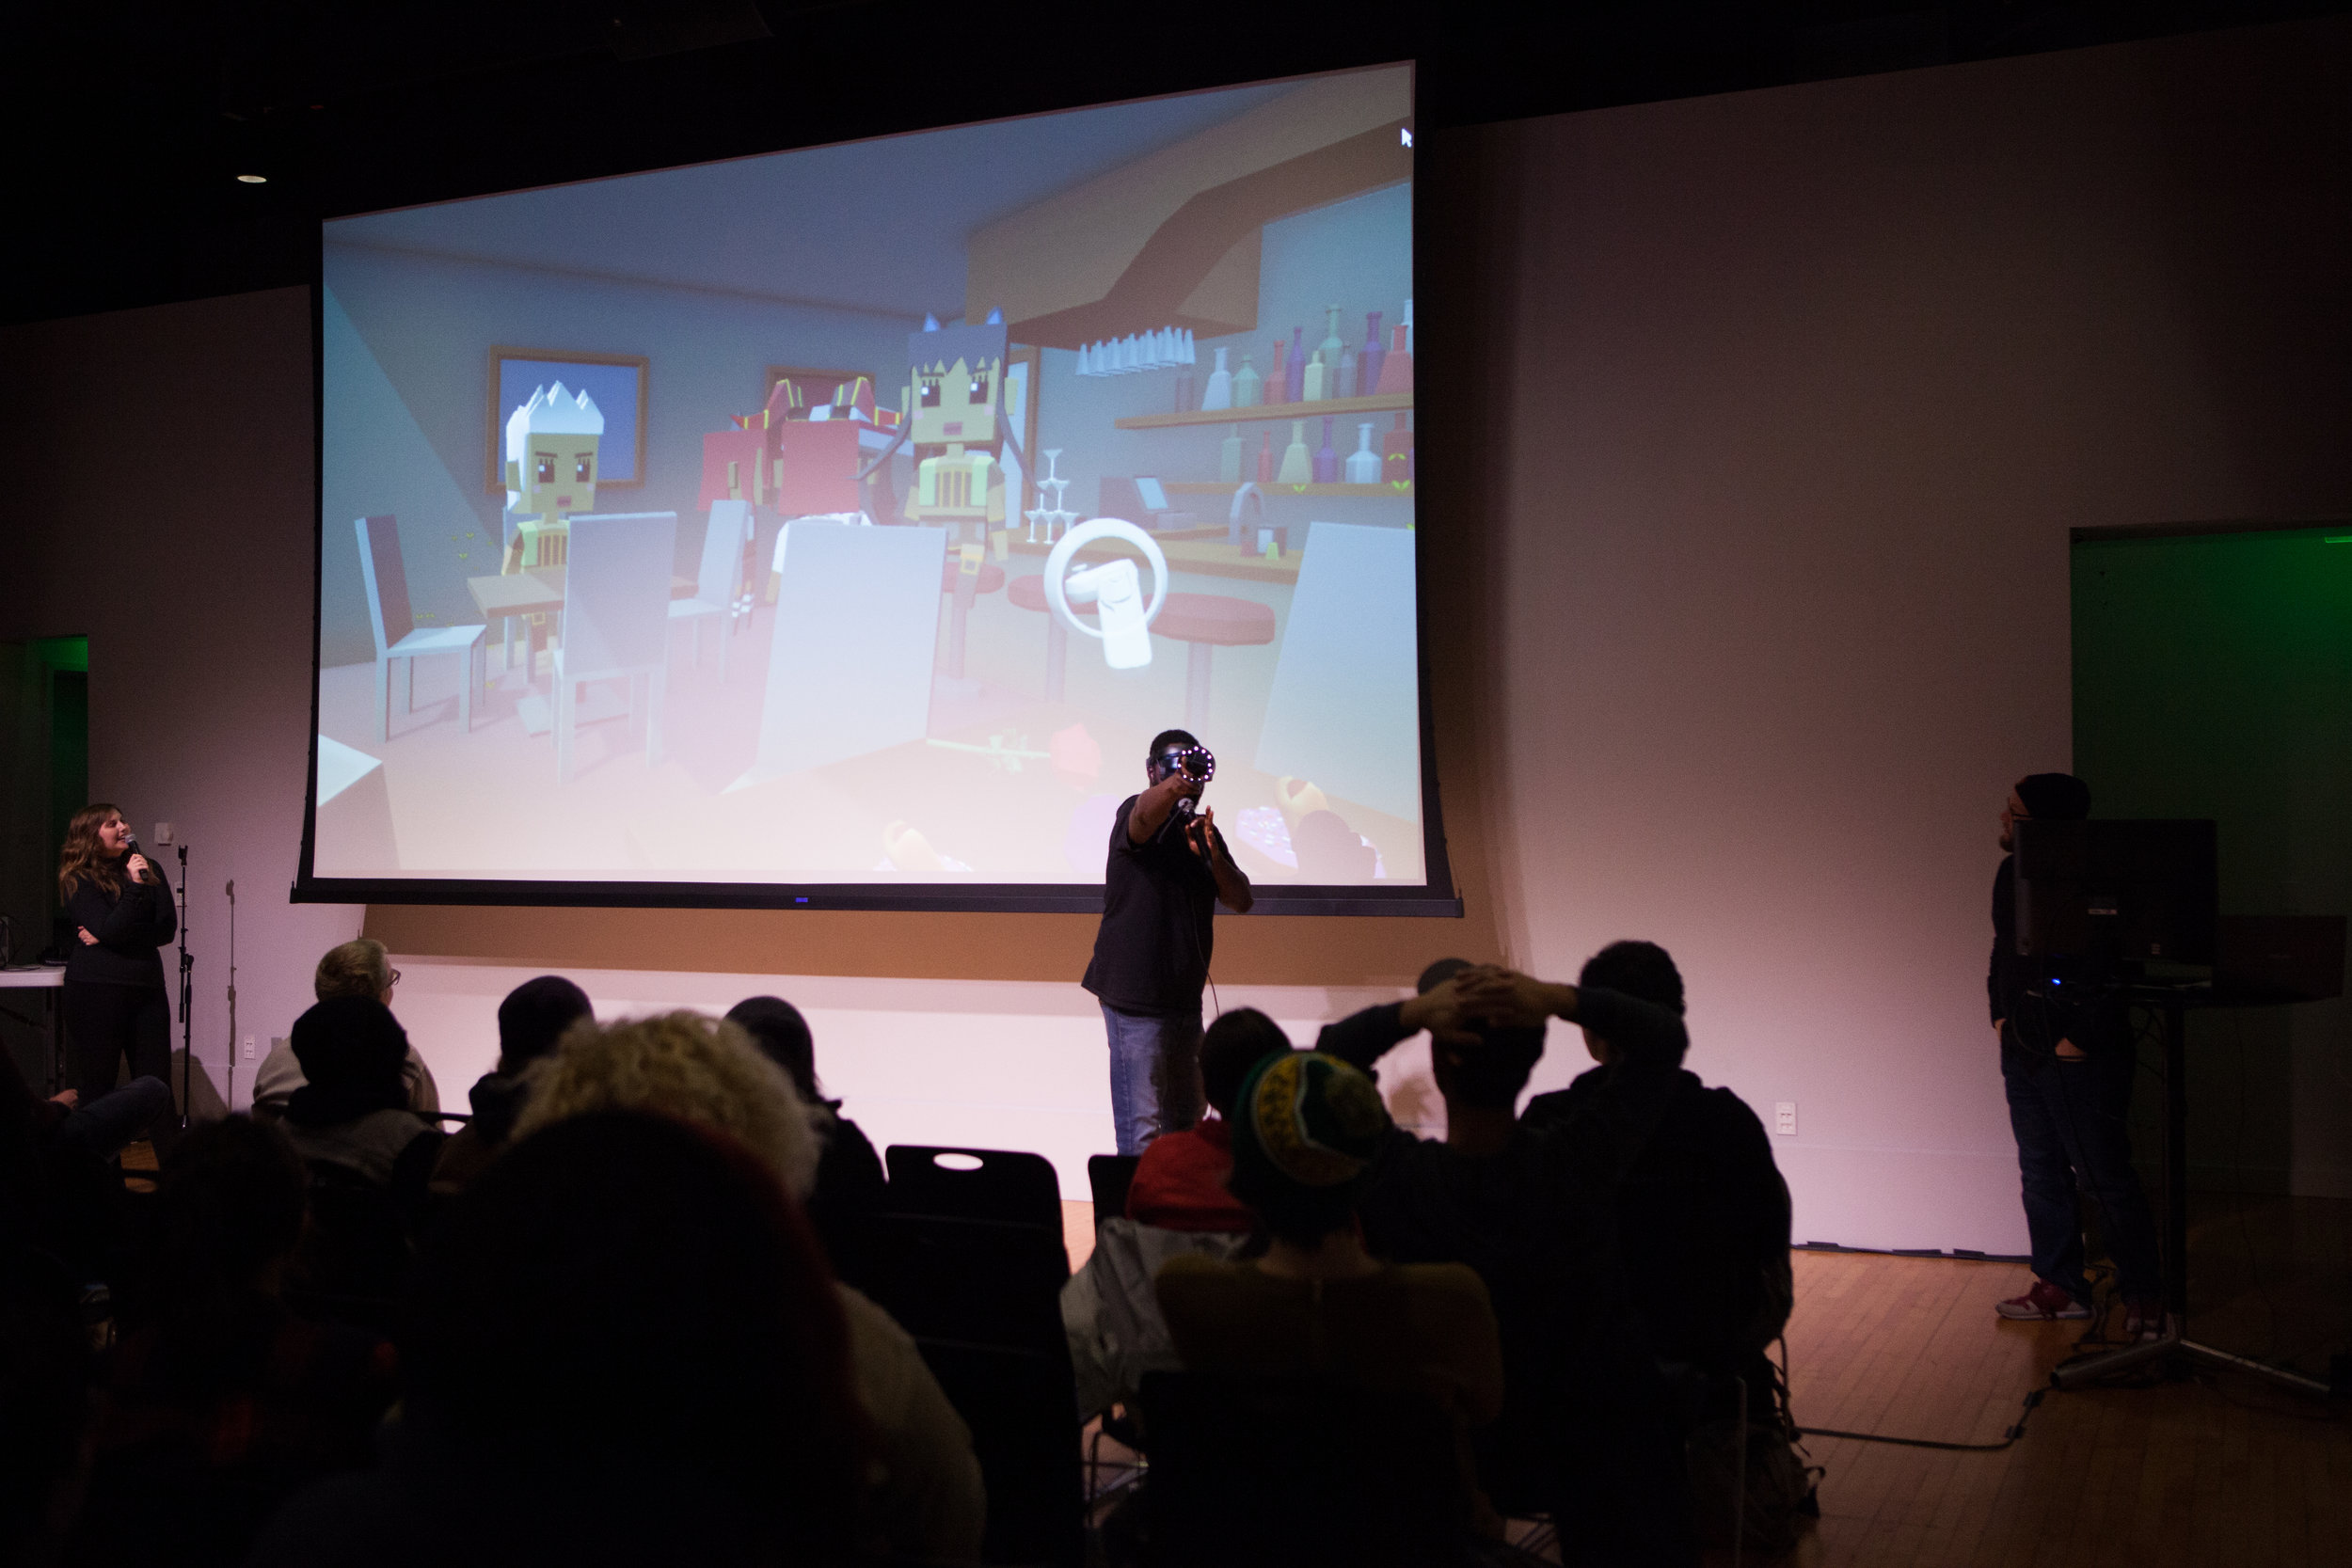 Live VR Experiences - What happens when a comedian enters virtual reality on stage in front of a live audience? Live commentary, humor, and a real-time video feed can draw people in like never before. We create branded VR experiences that can be performed live and downloaded later to play with friends.